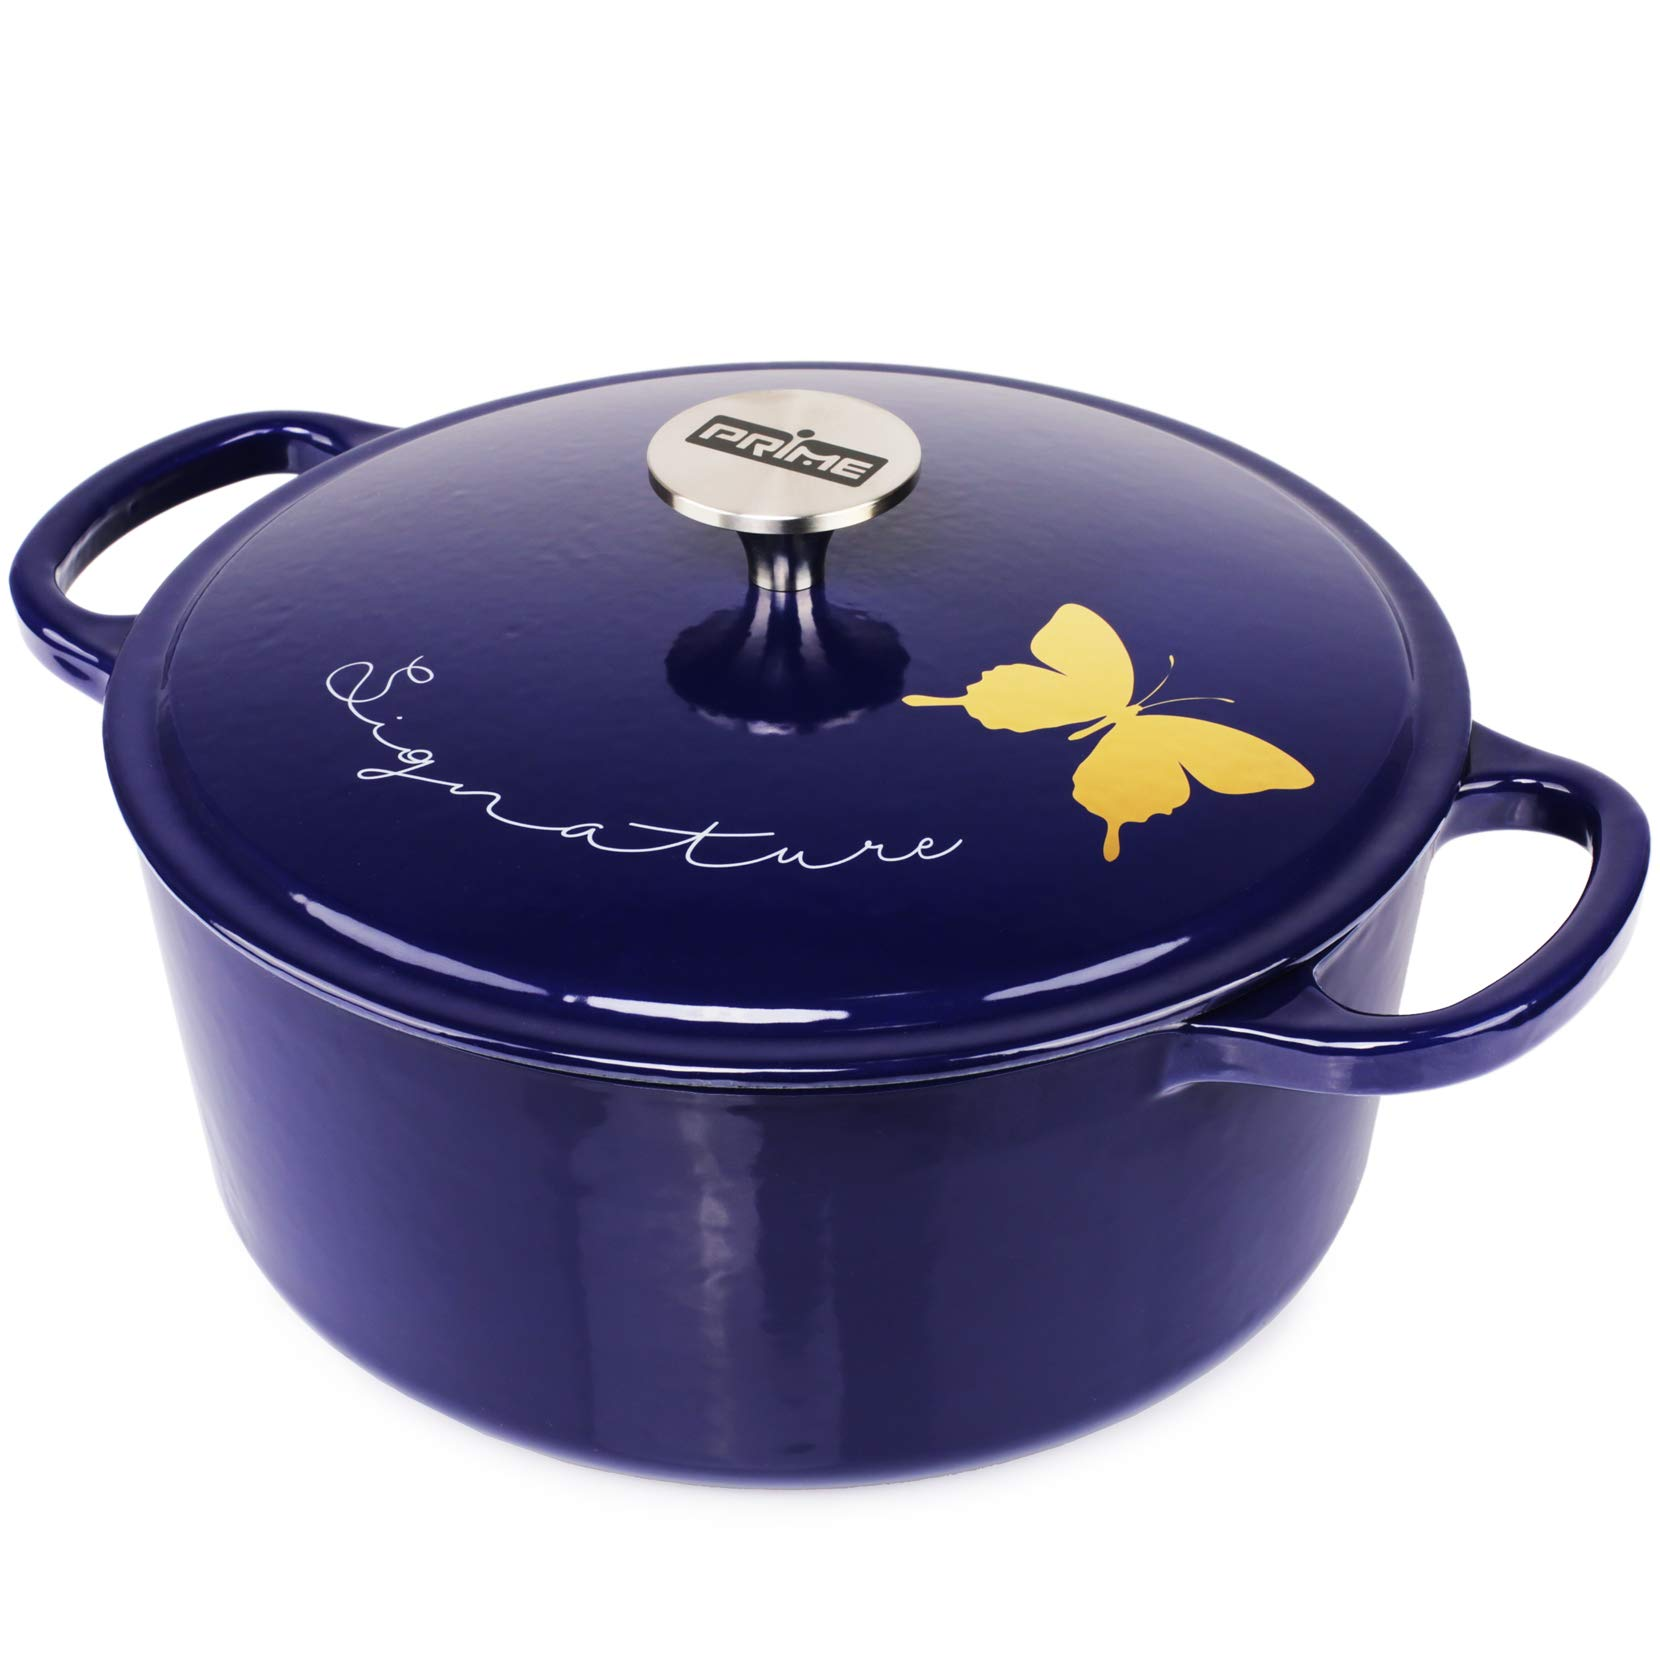 Prime | Gold Painted Enameled Cast Iron 5.5 Quart Dutch Oven, Round Casserole Dish Pot with Lid | Gift Ideas, Signature Golden Butterfly, Midnight Blue